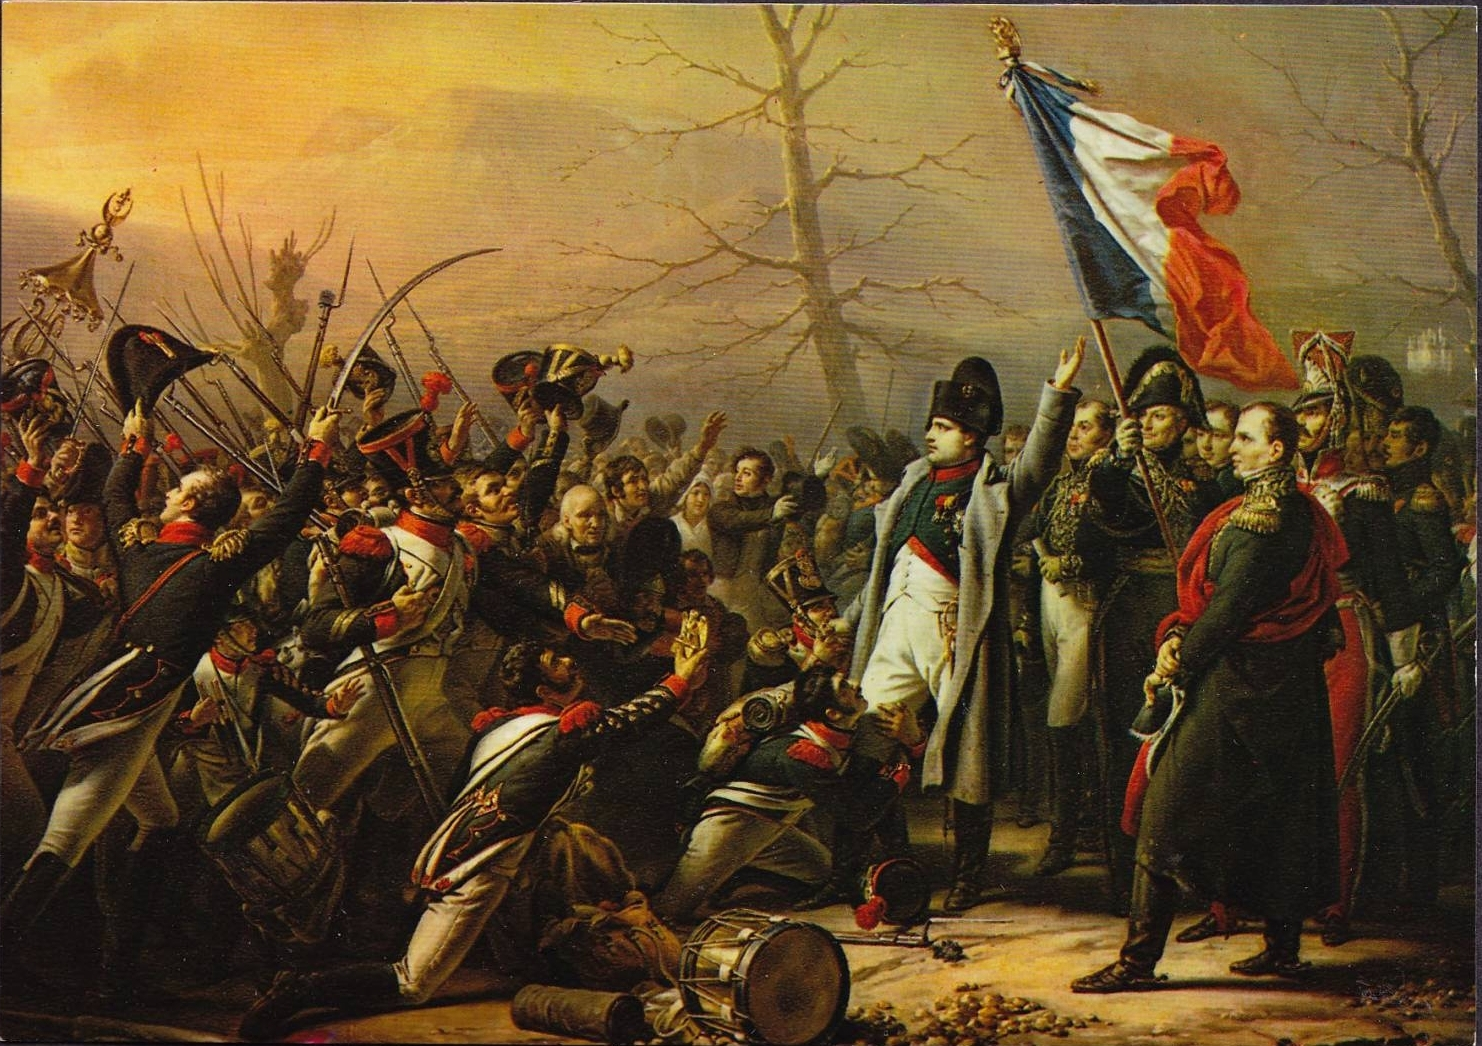 http://upload.wikimedia.org/wikipedia/commons/a/a9/Napoleon_returned.jpg